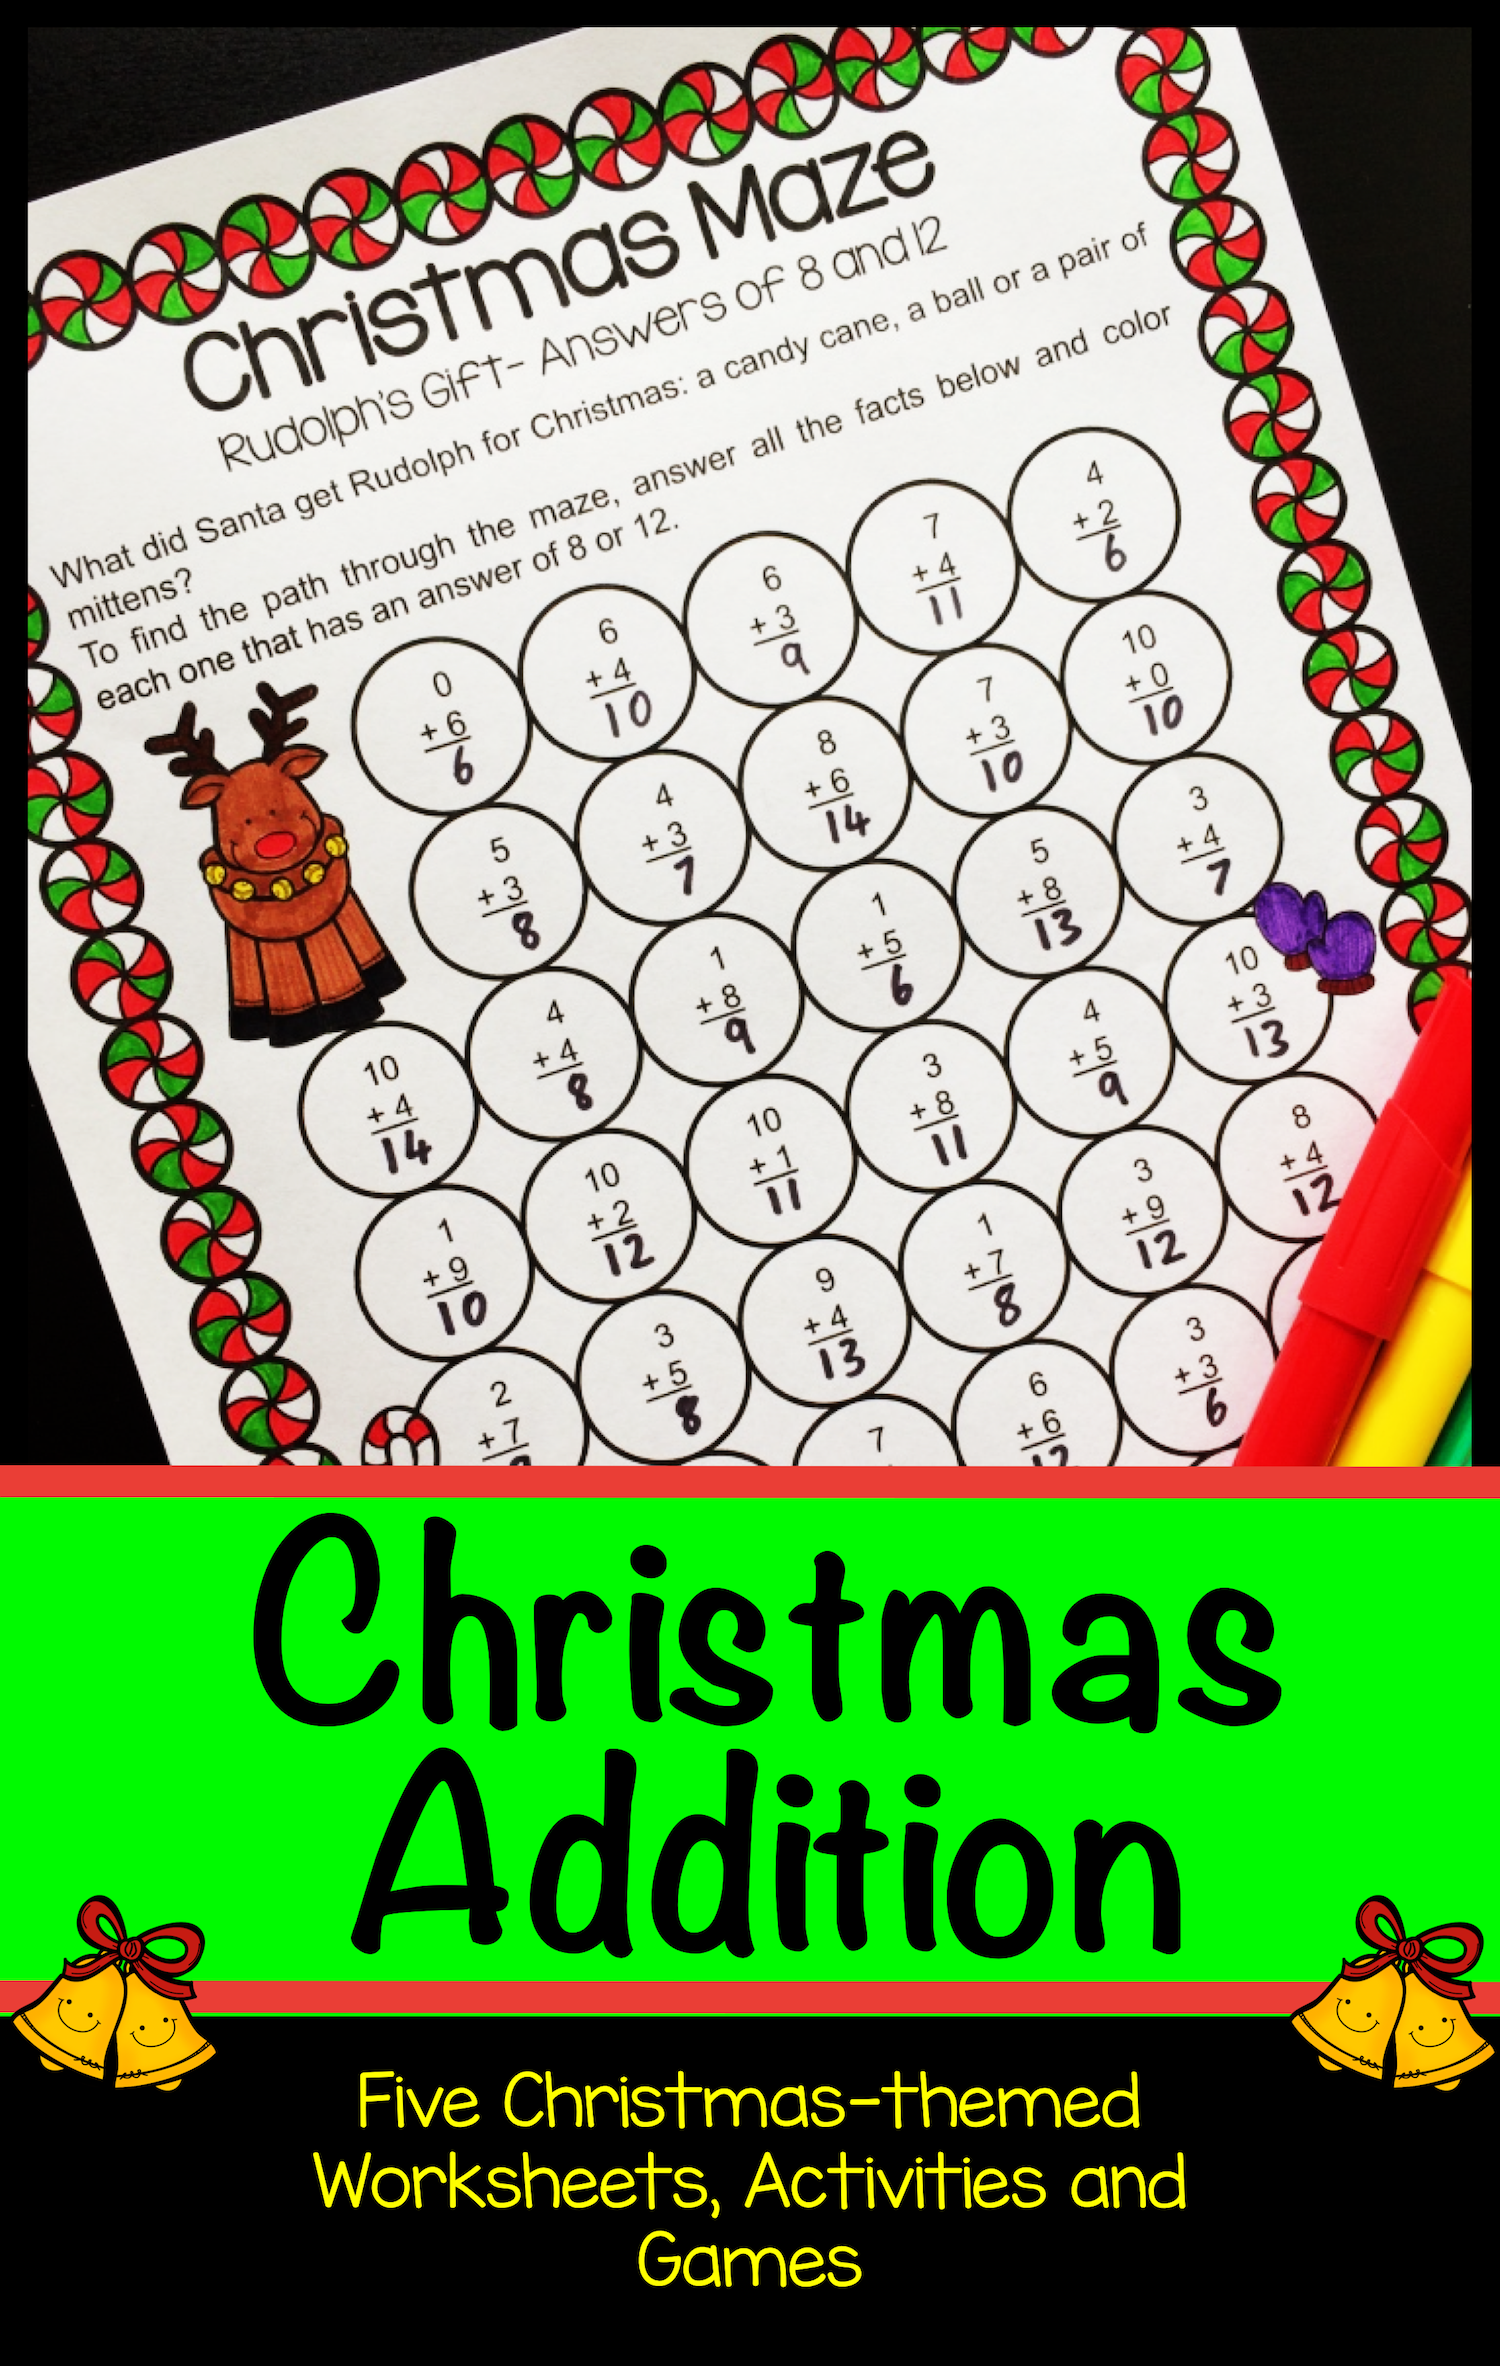 Need Some Last Minute Christmas Math Worksheets And Activities Kids Will Love These No Prep Except F Christmas Math Christmas Math Activities Math Worksheets [ 2366 x 1500 Pixel ]